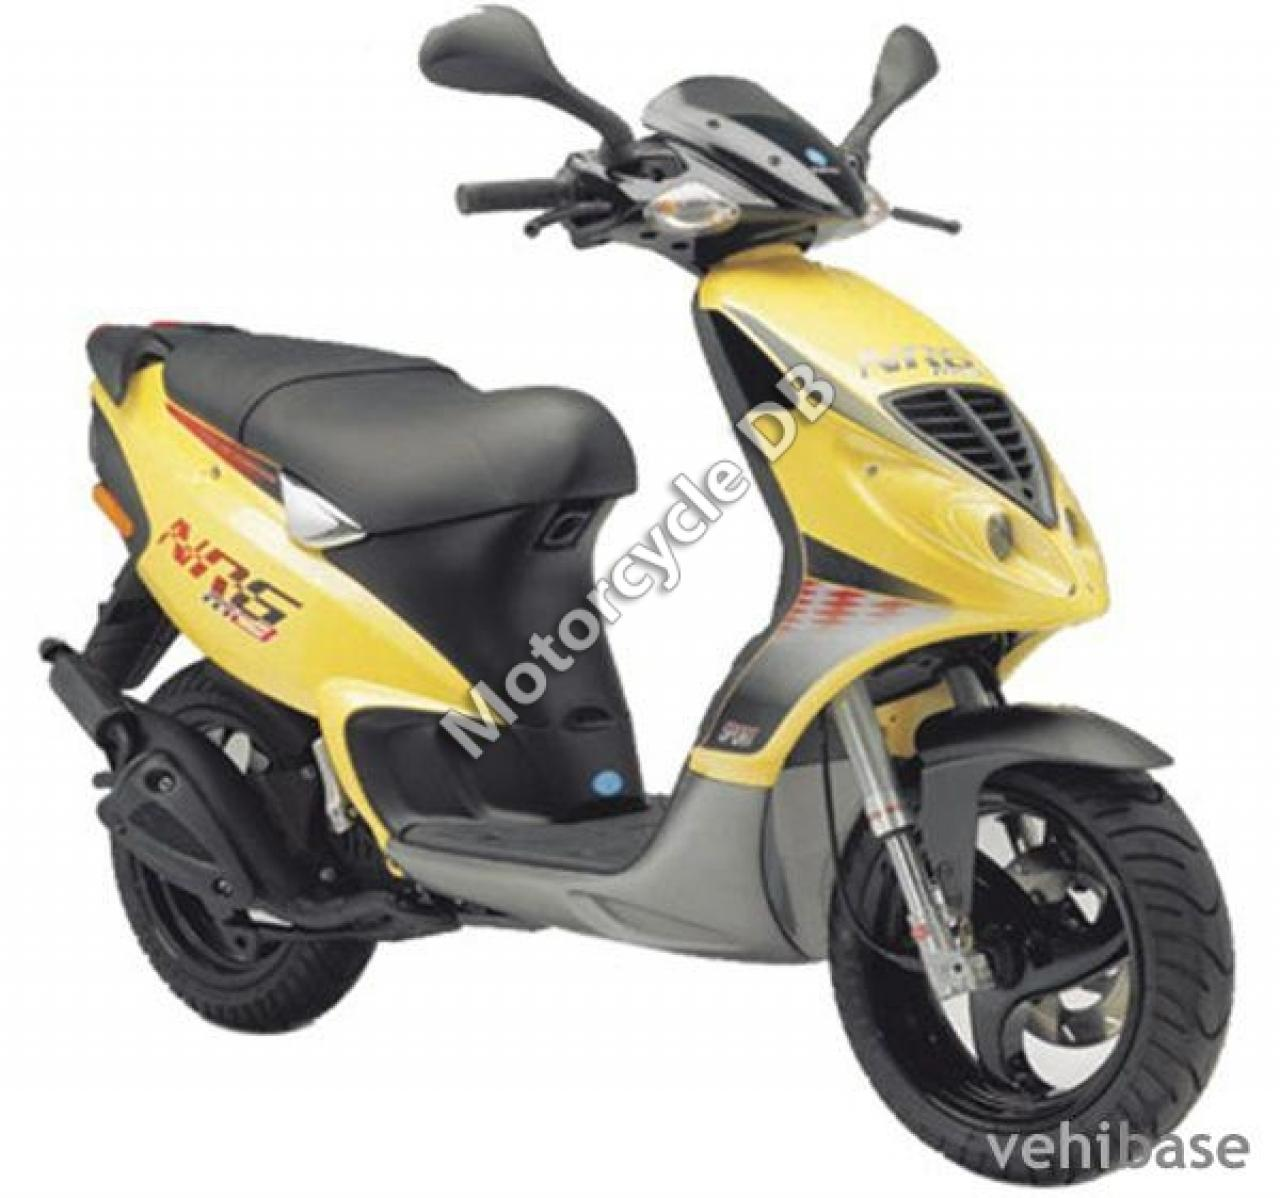 Piaggio nrg photo - 8